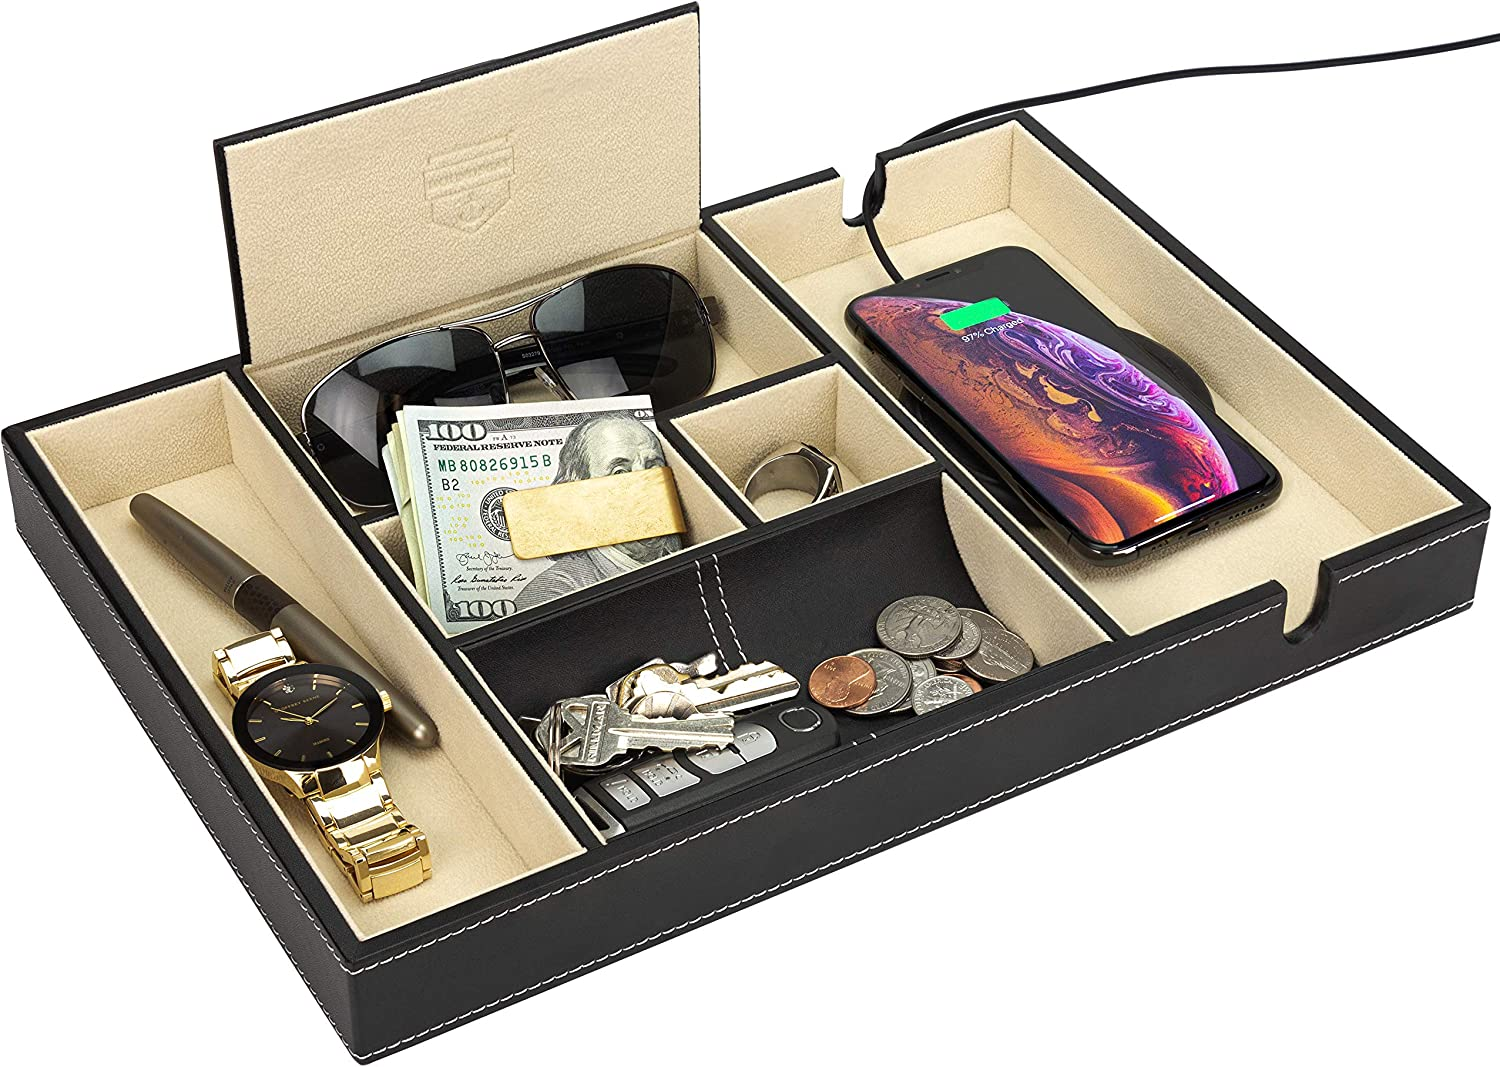 """HOUNDSBAY """"Victory Valet Tray for Men with Large Smartphone Charging Station (Ivory)"""